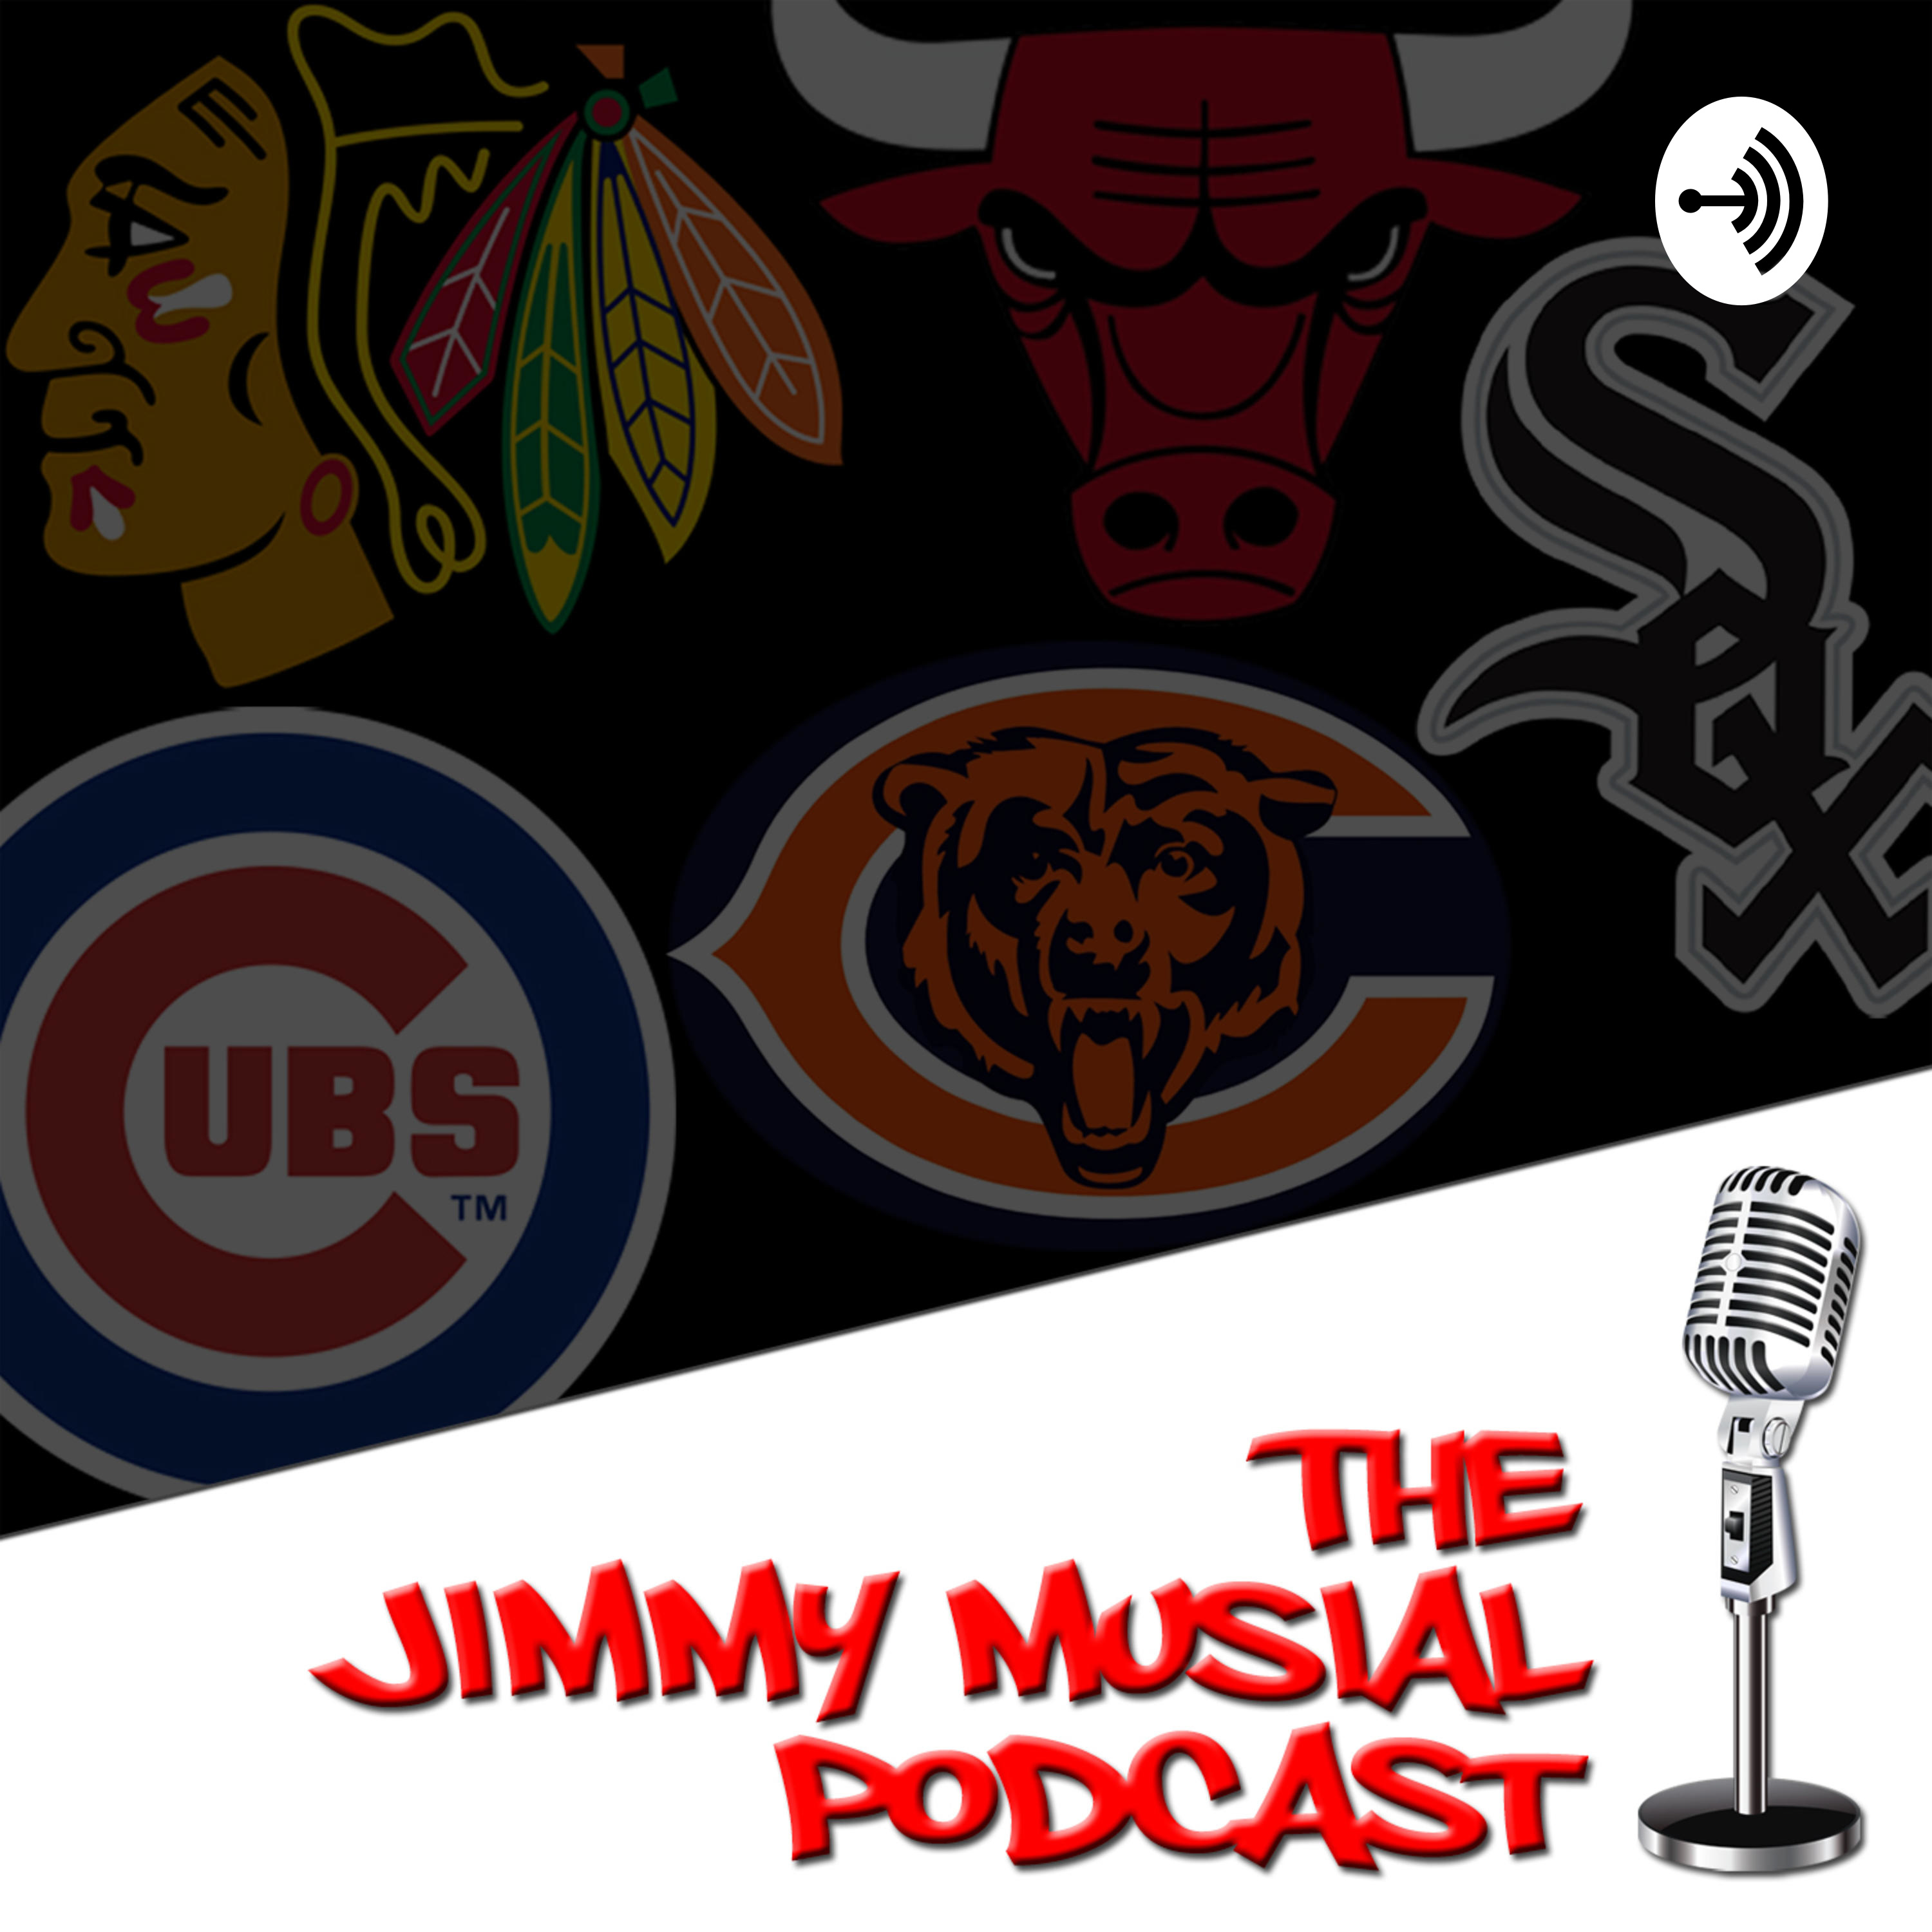 The Jimmy Musial Podcast | Listen via Stitcher for Podcasts